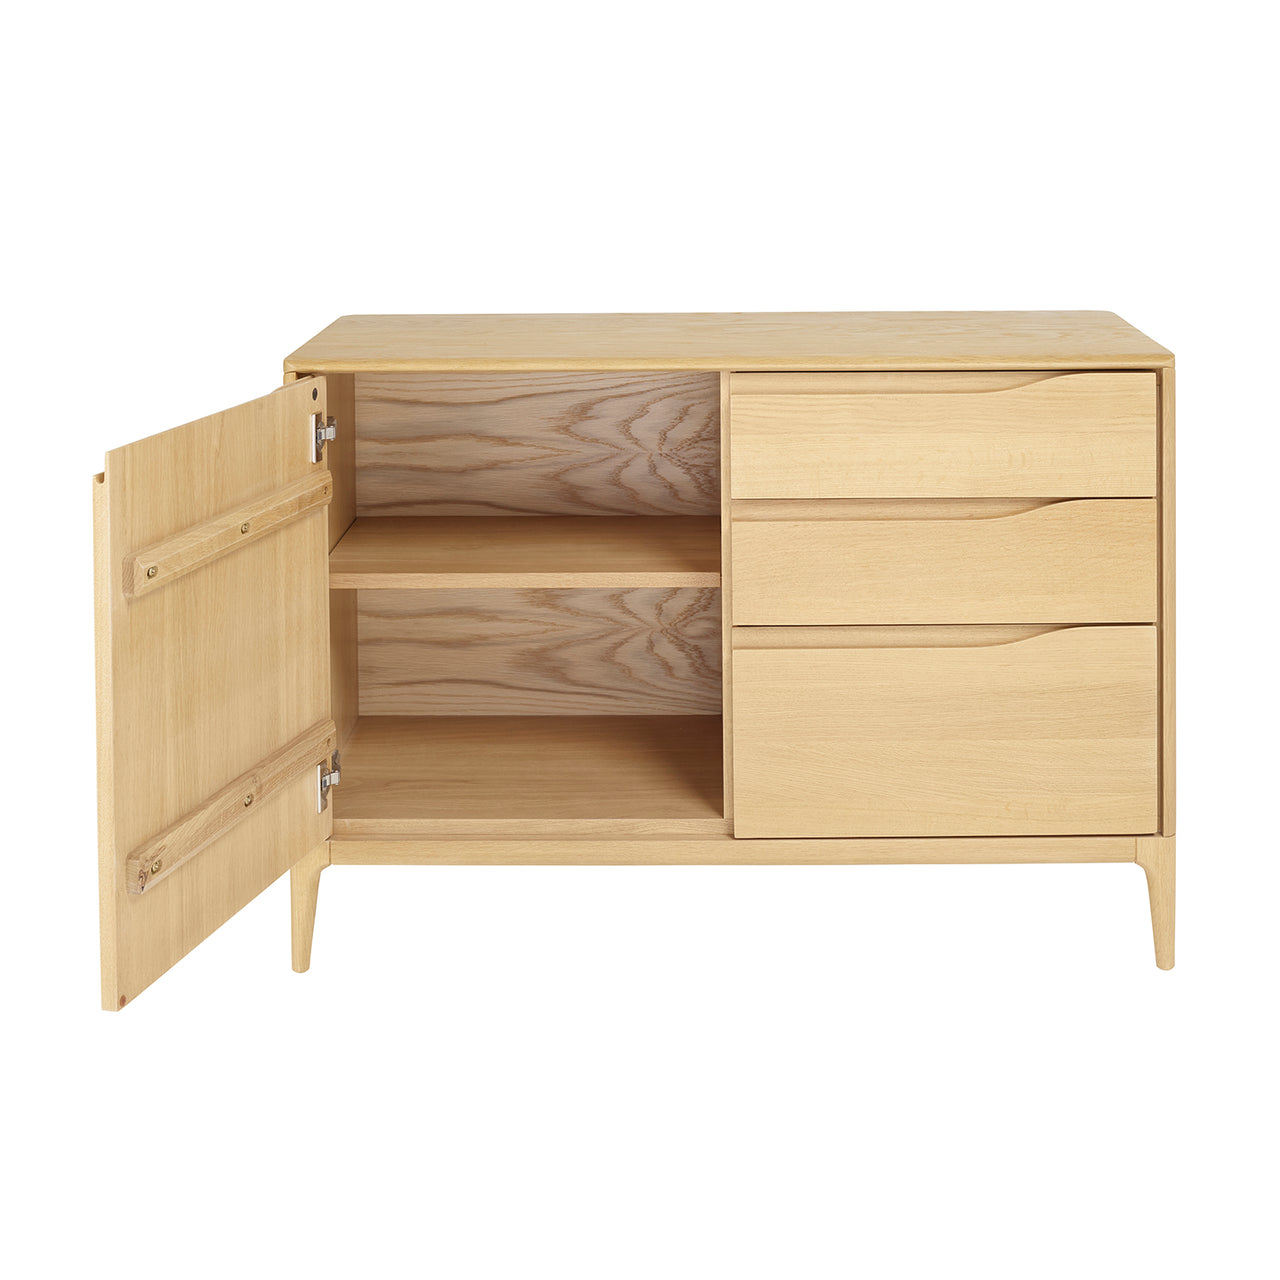 Romana Sideboard: Small